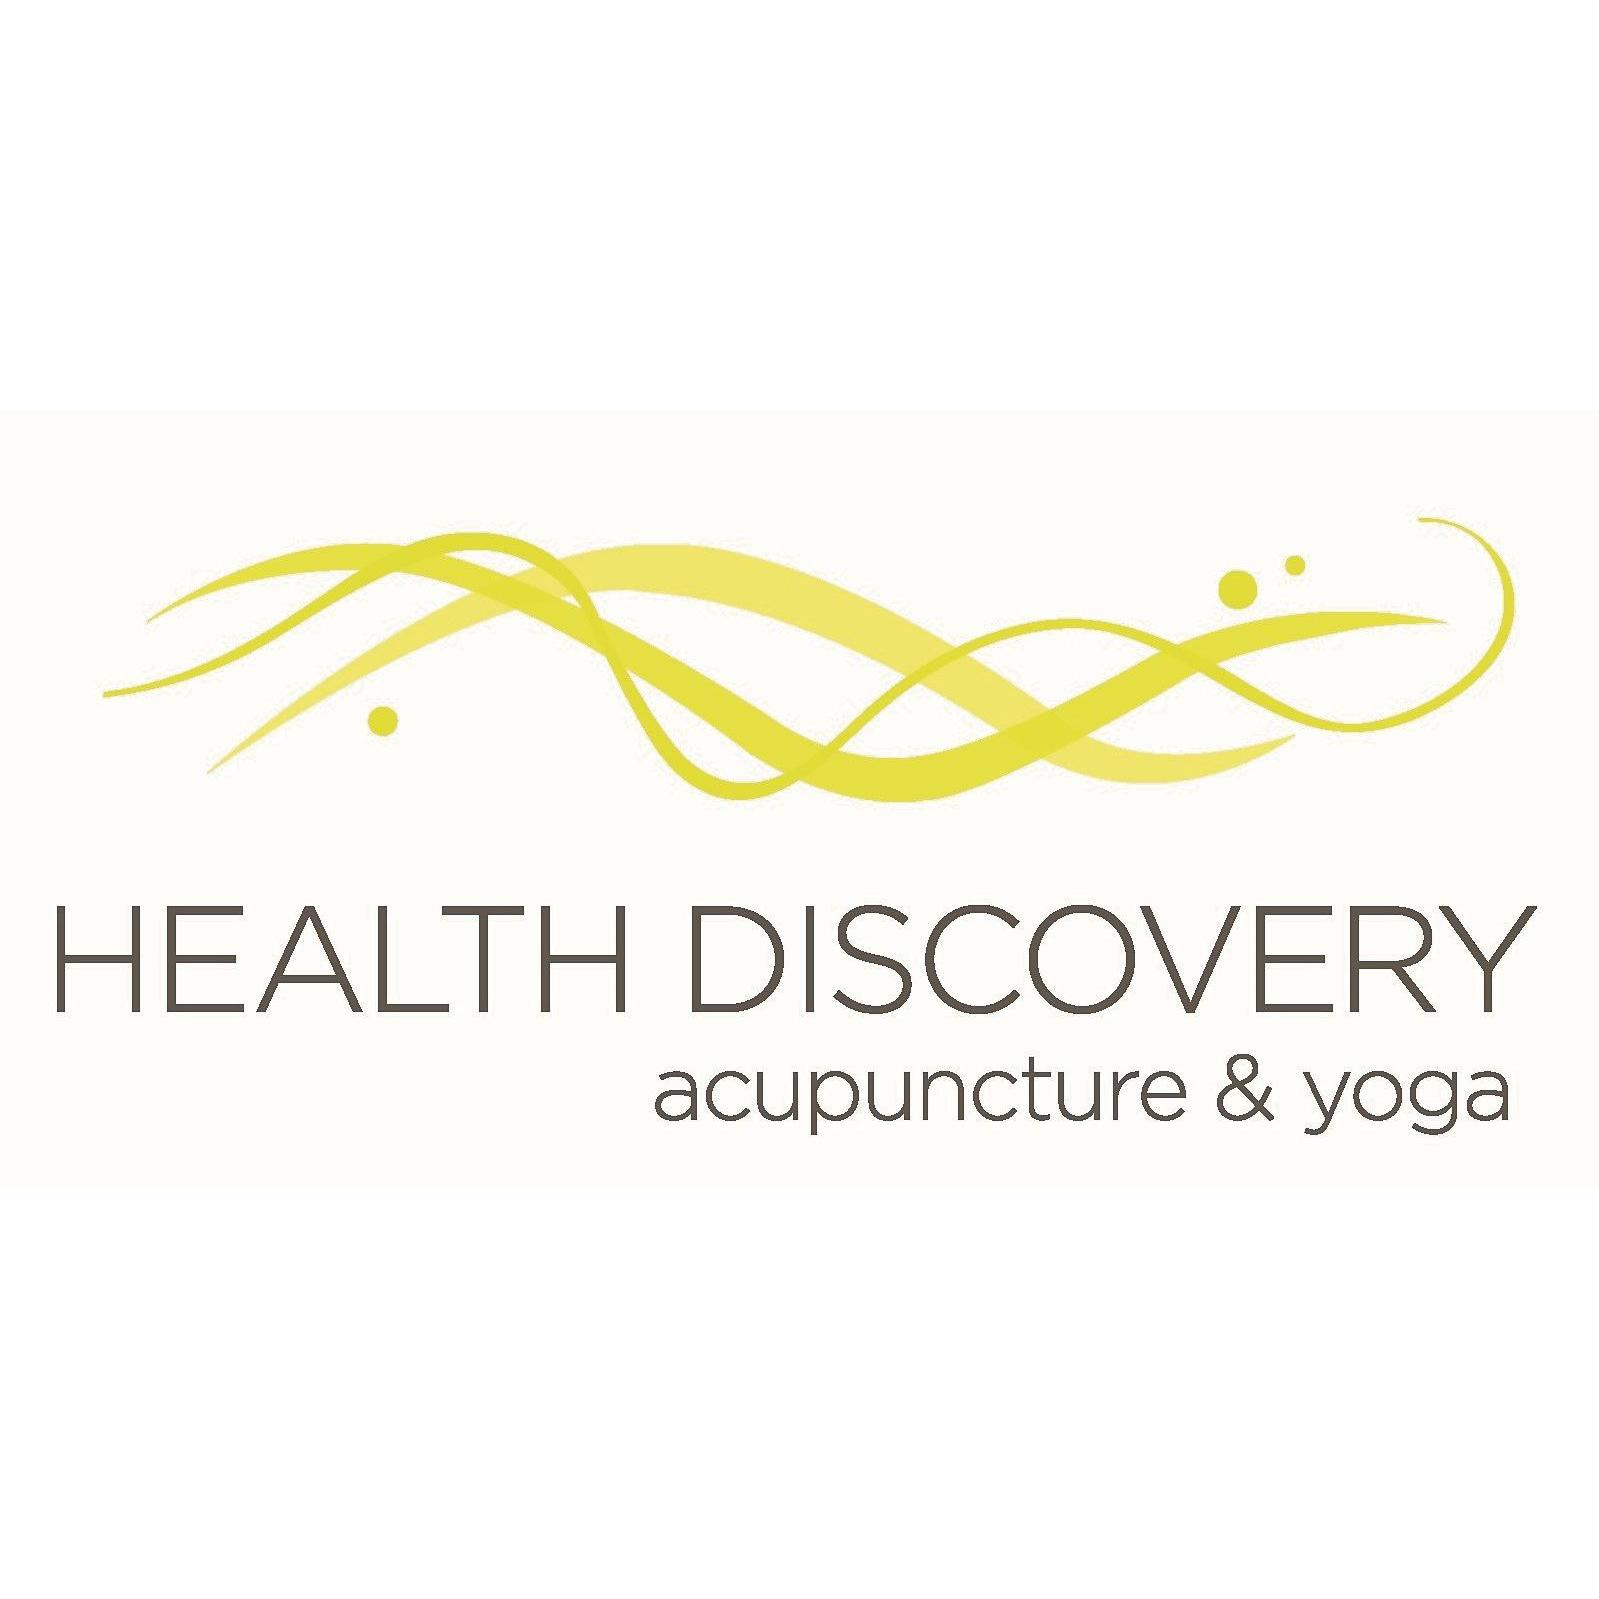 Health Discovery Acupuncture & Yoga, LLC.